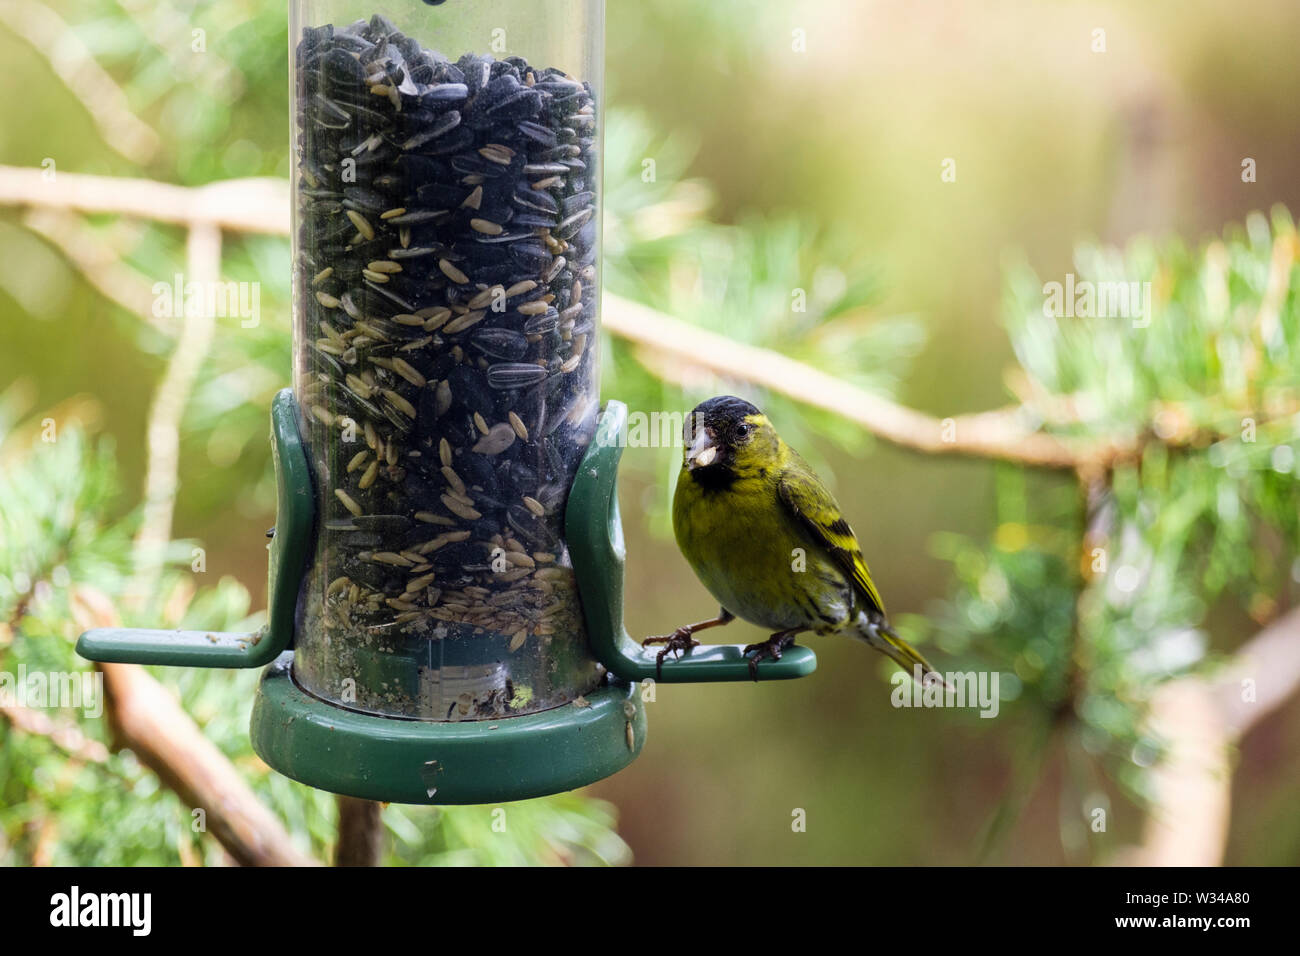 A male Siskin (Carduelis spinus) finch eating a seed from a garden bird feeder in a pine forest. Scotland, UK, Britain - Stock Image